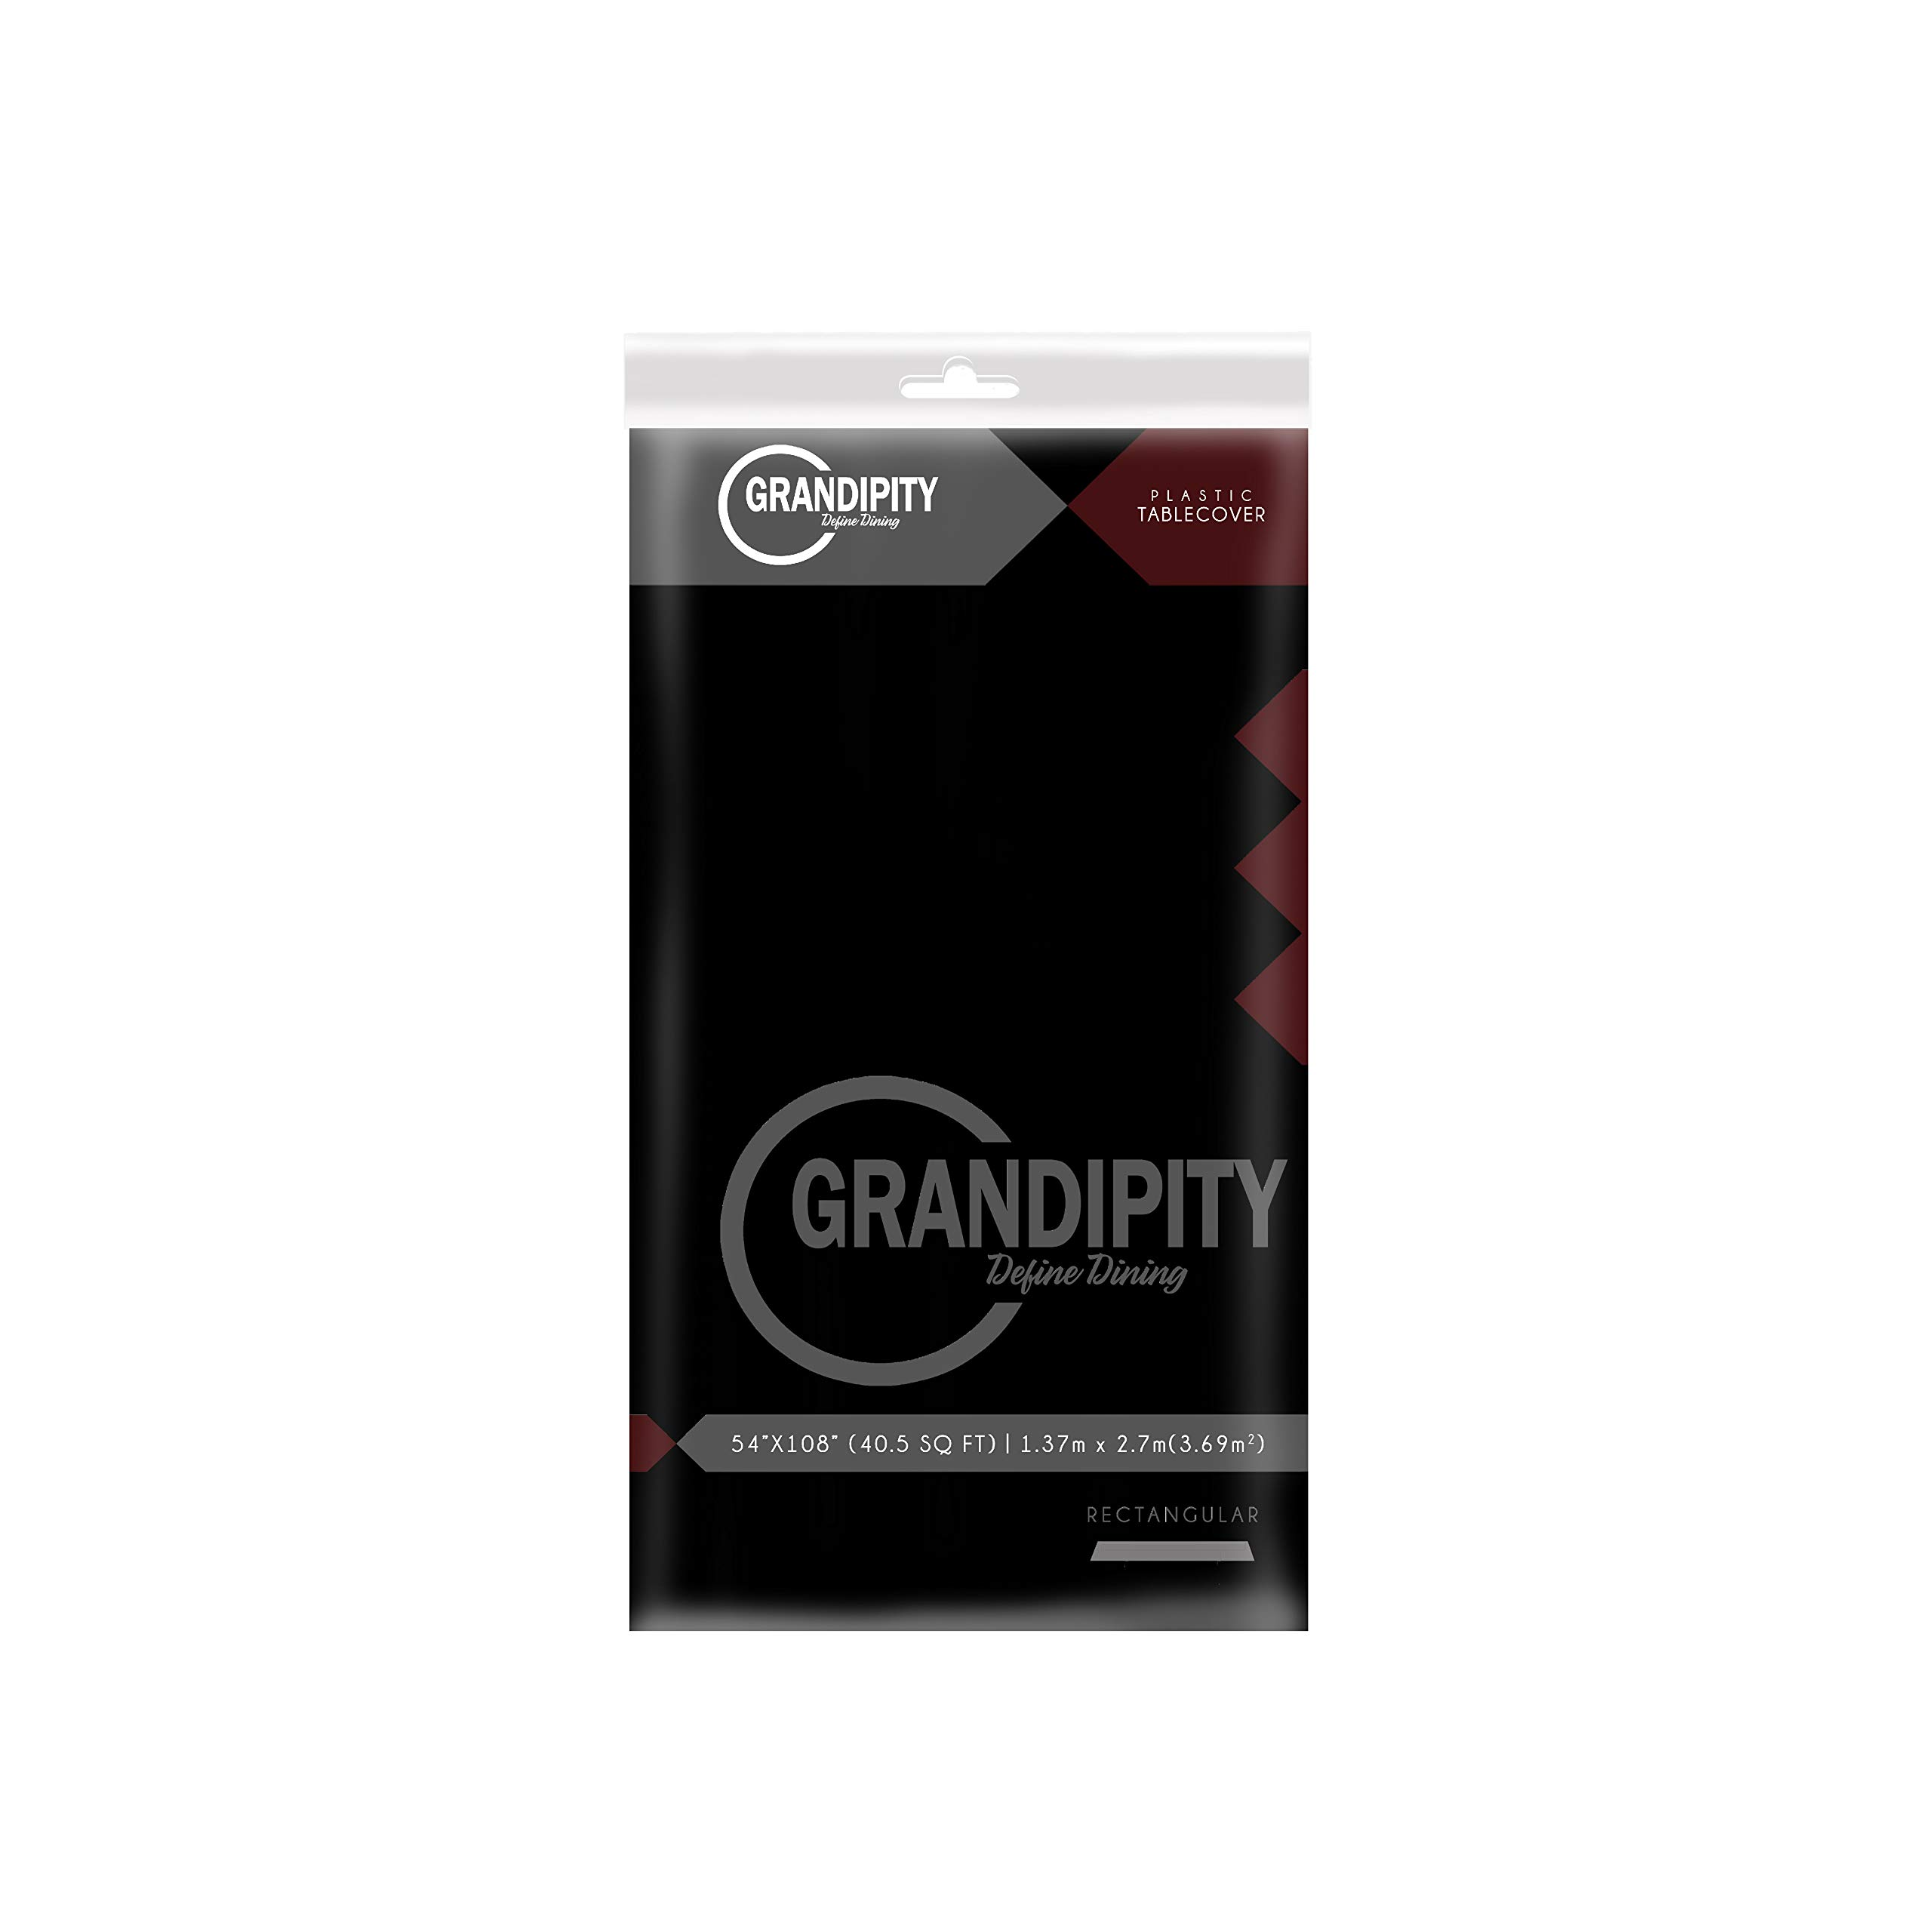 Black 12 Pack Premium Disposable Plastic Tablecloth 54 Inch. x 108 Inch. Rectangle Table Cover By Grandipity by Grandipity (Image #2)